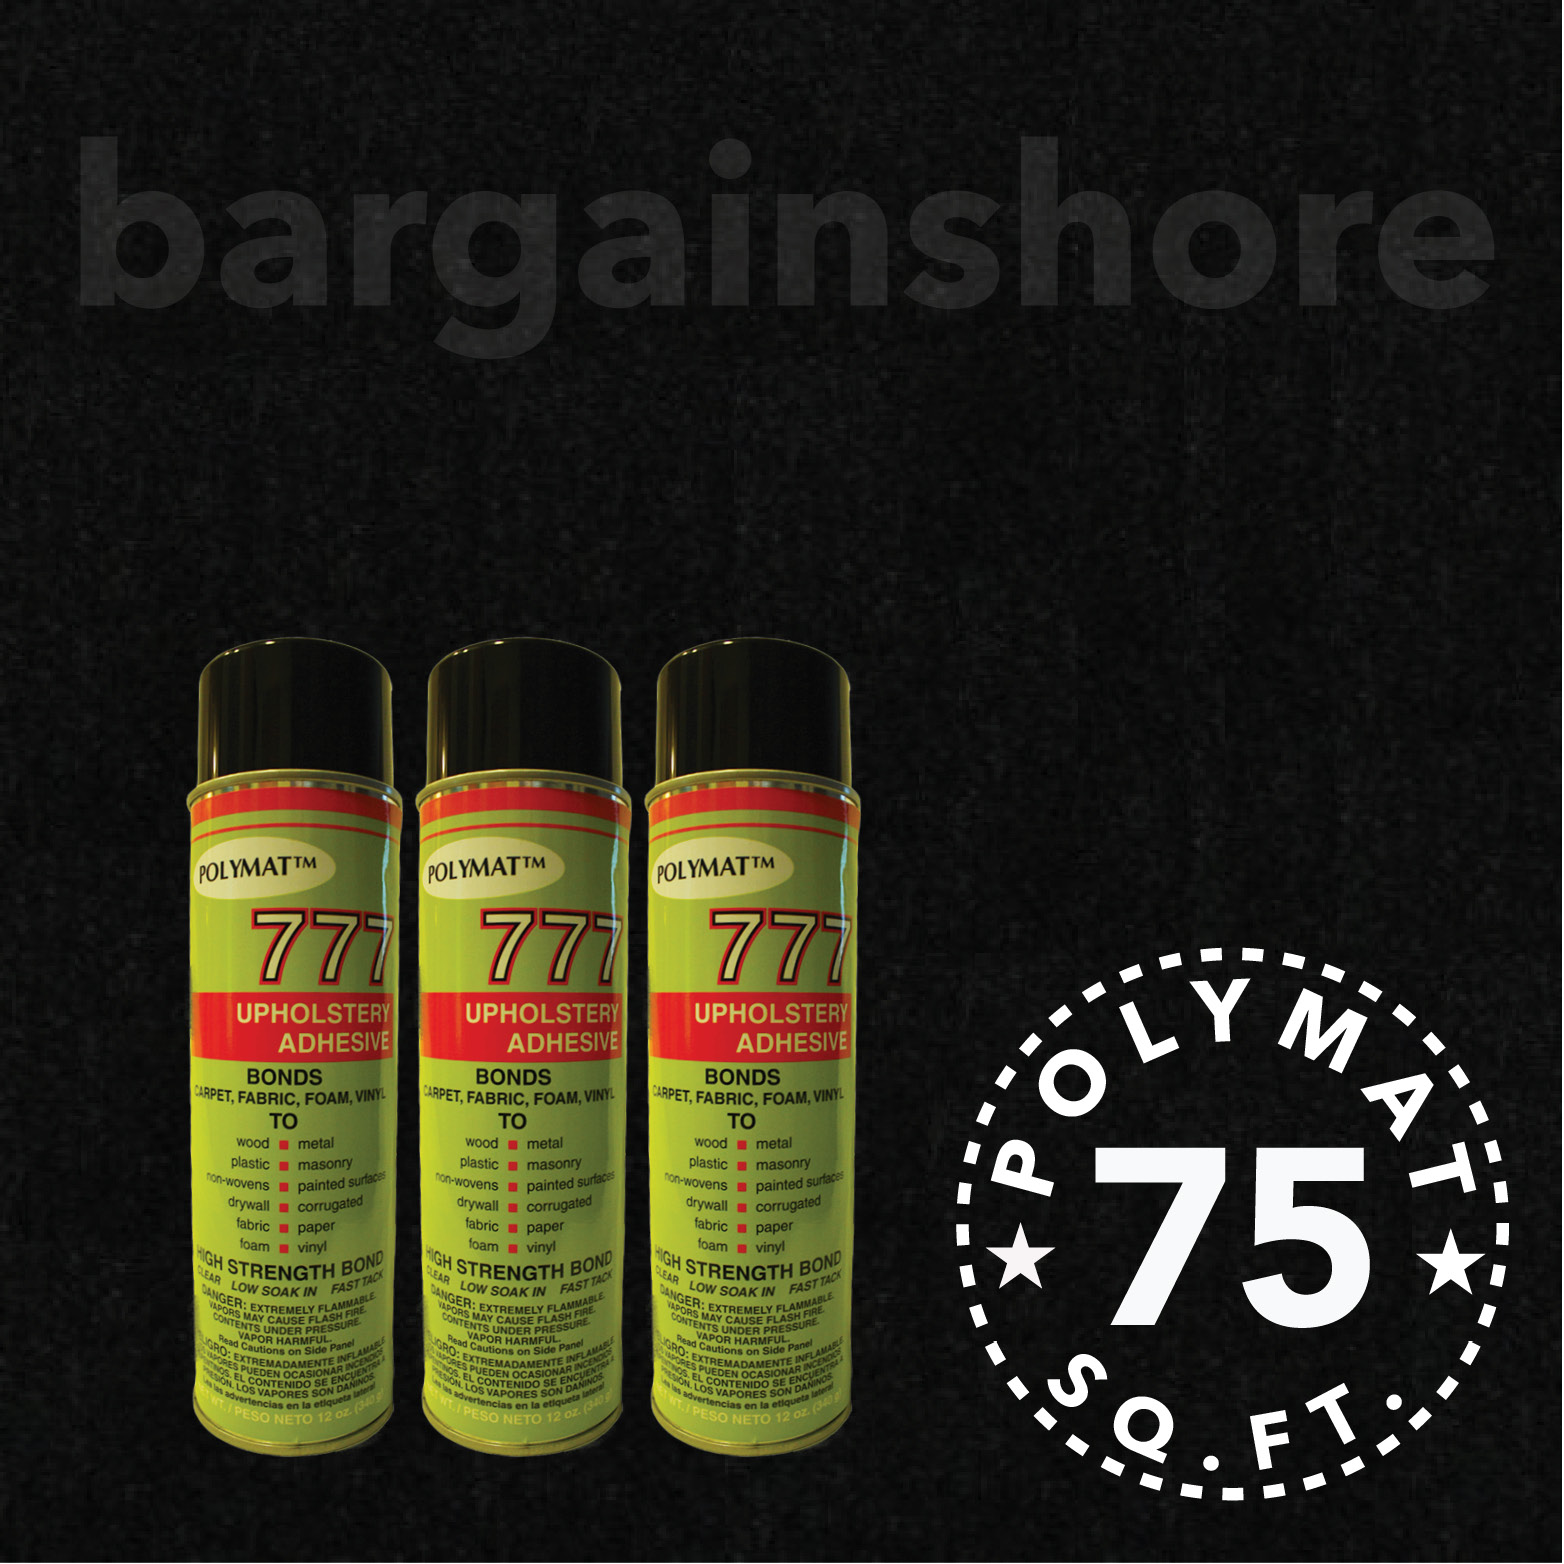 20t x 3.75ft + 3 (777) GLUE ADHESIVE CANS BLACK FOR STORE...